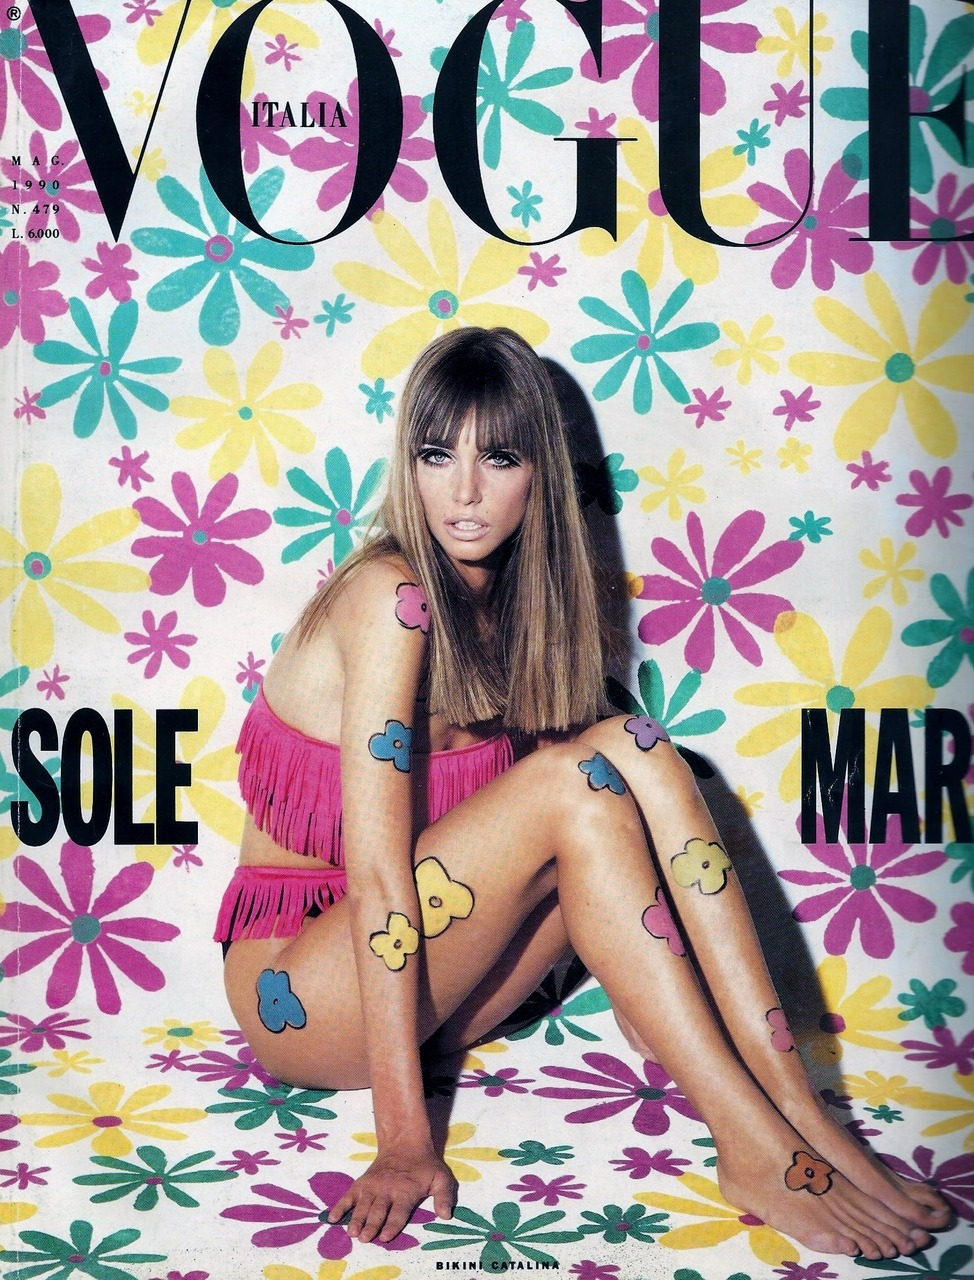 sfilate:  Roberta Chirko photographed by Steven Meisel on the cover of Vogue Italia May 1990 :